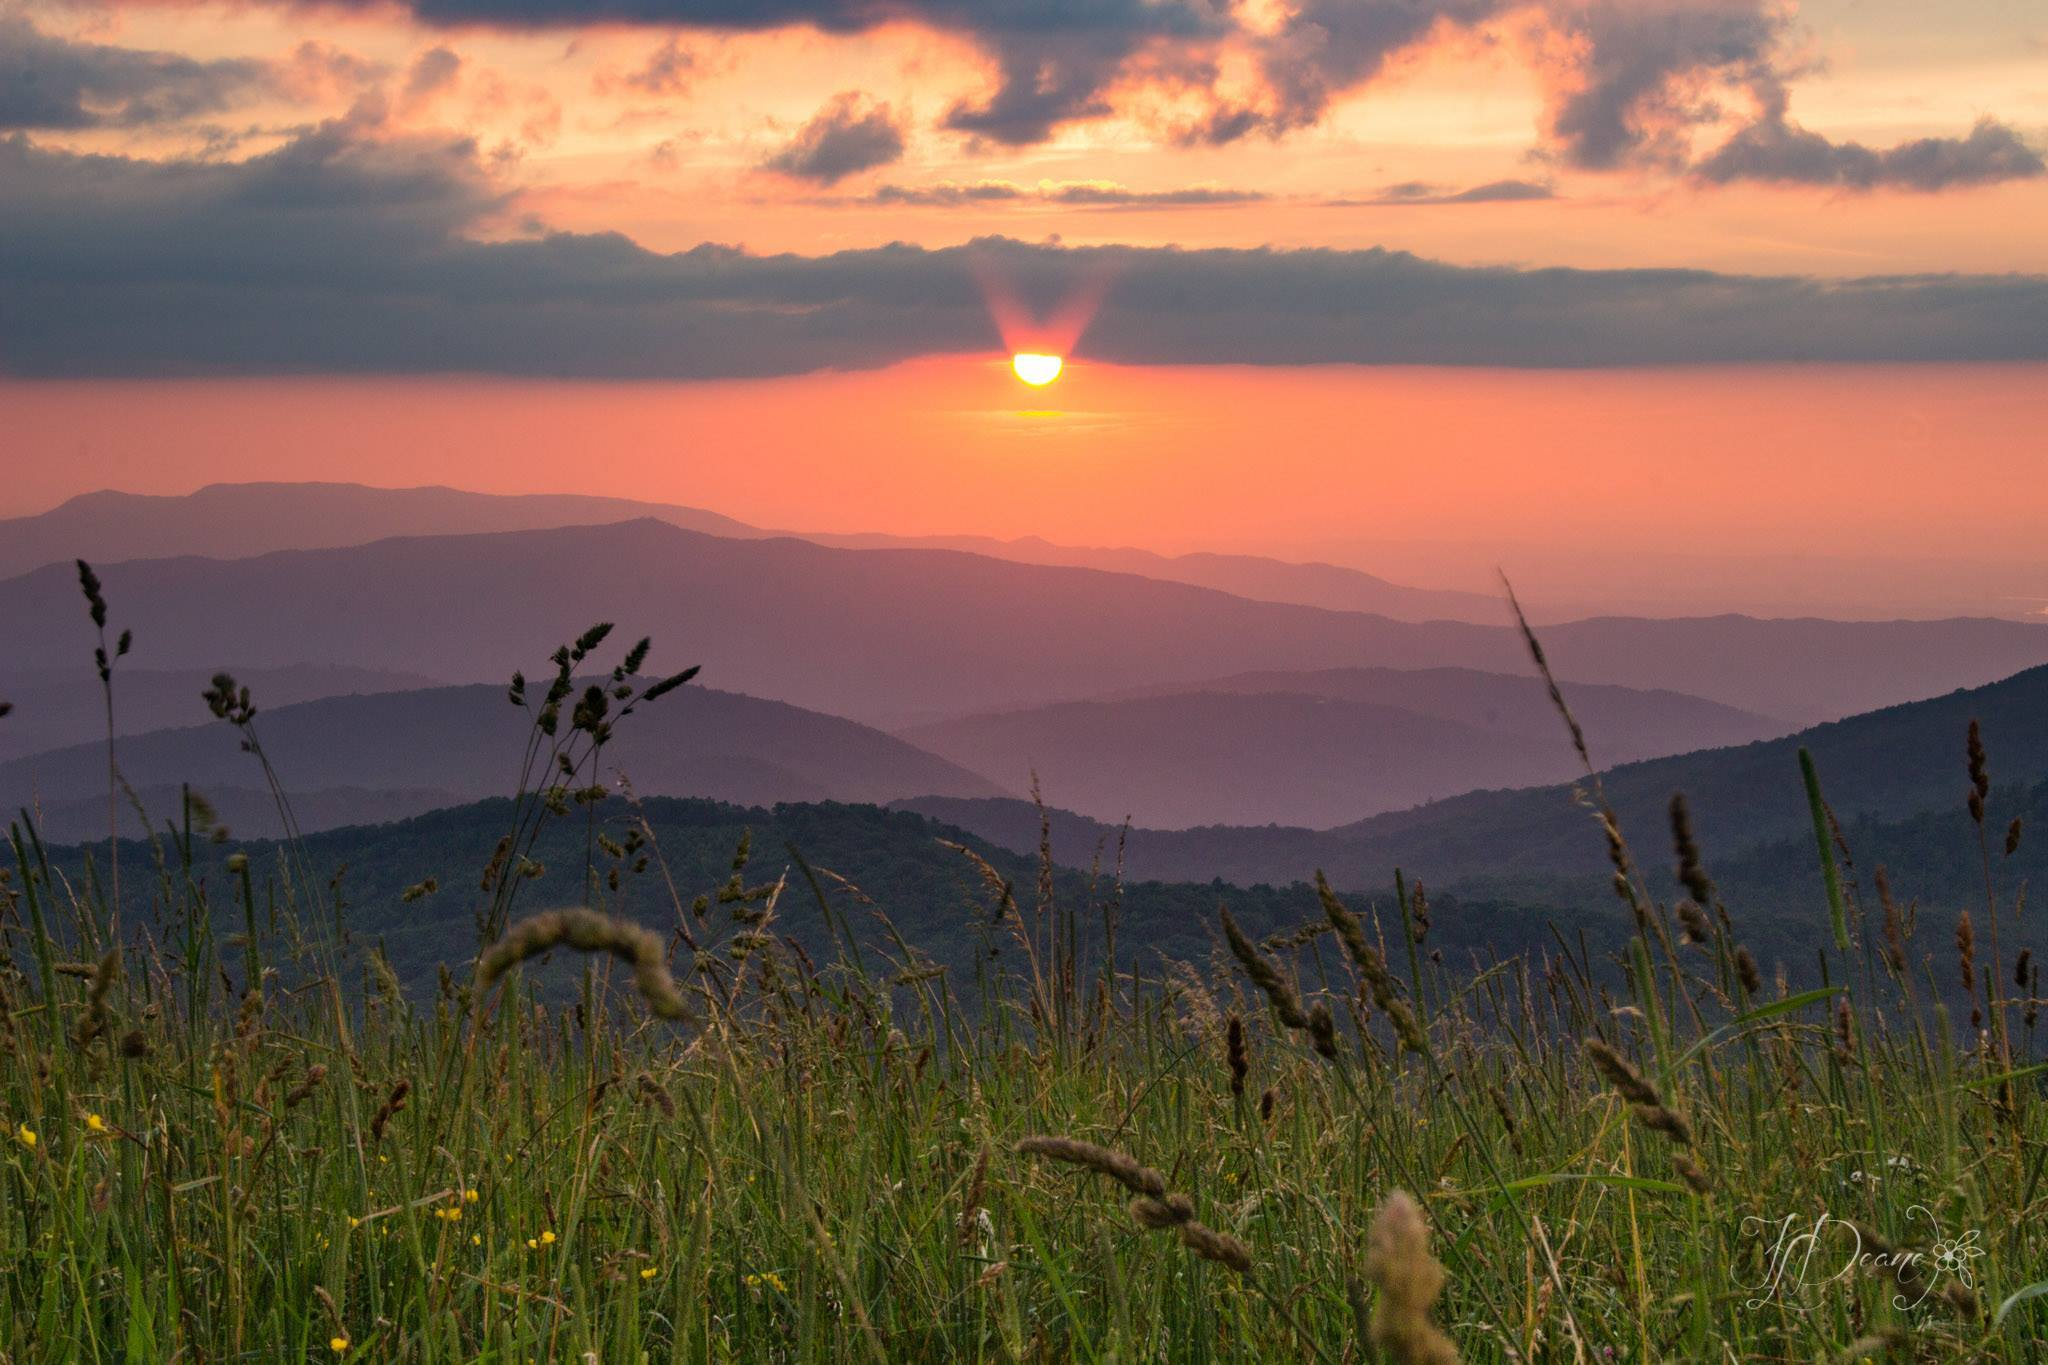 Sunset at Max Patch NC